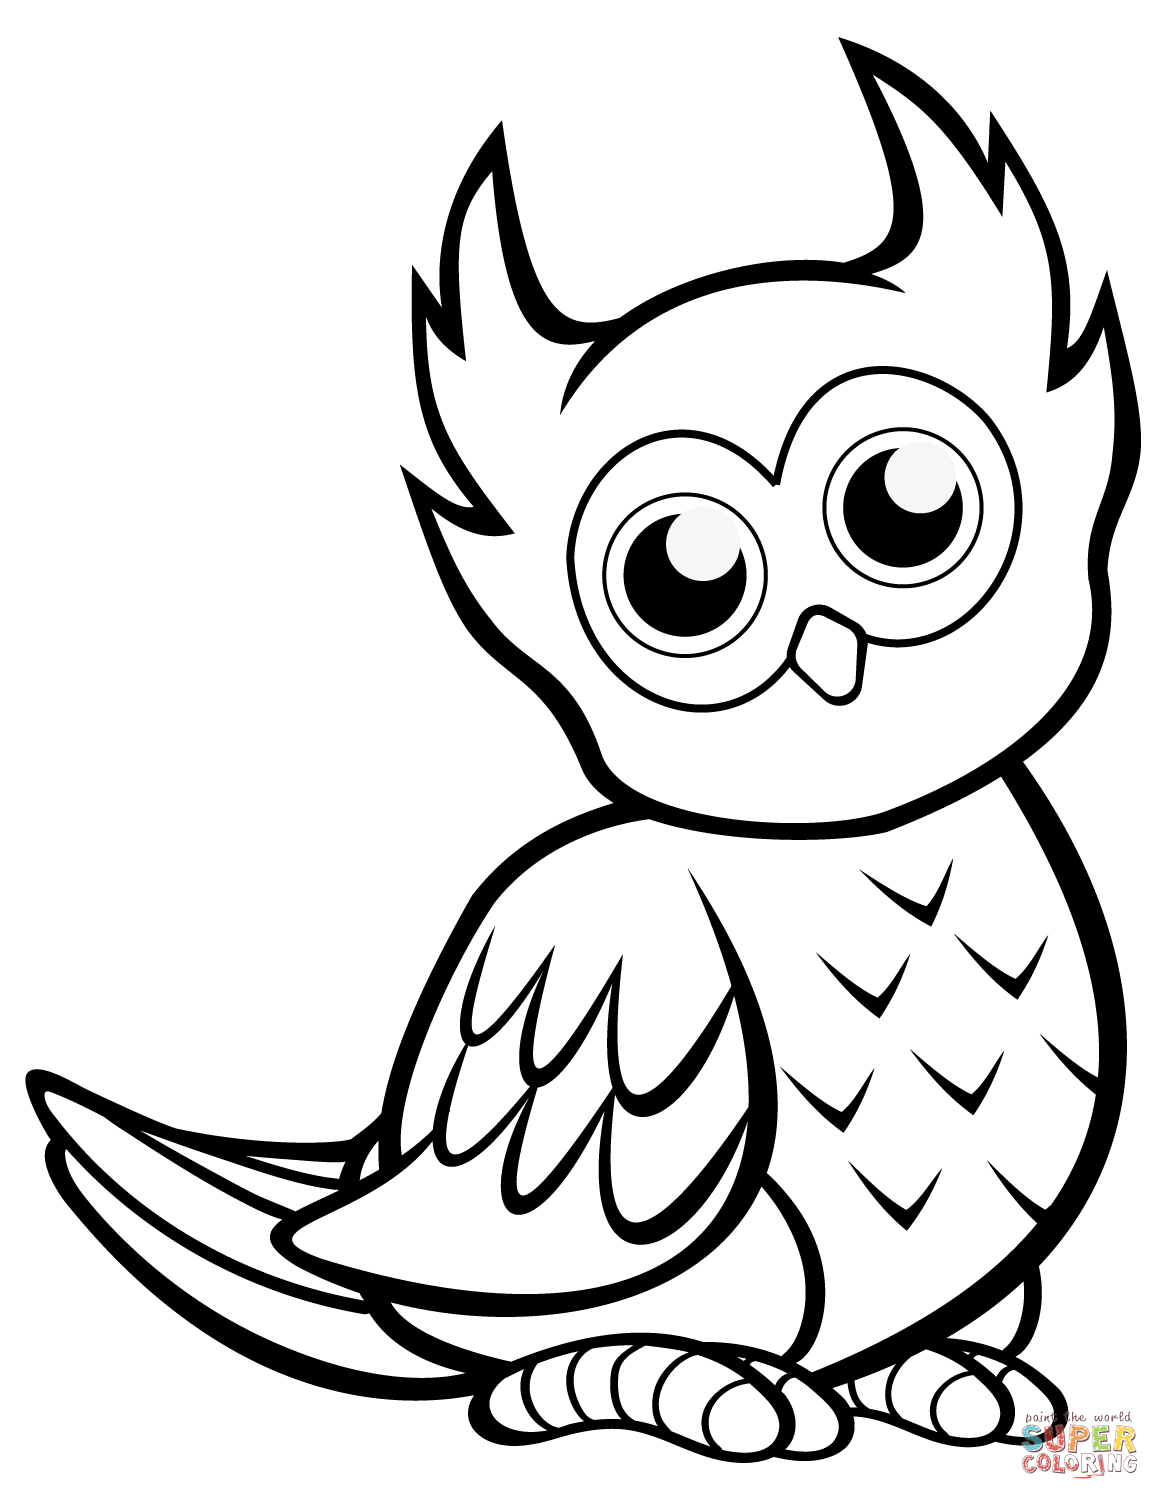 picture of owls to color couple of cute owls coloring page free printable color picture to owls of